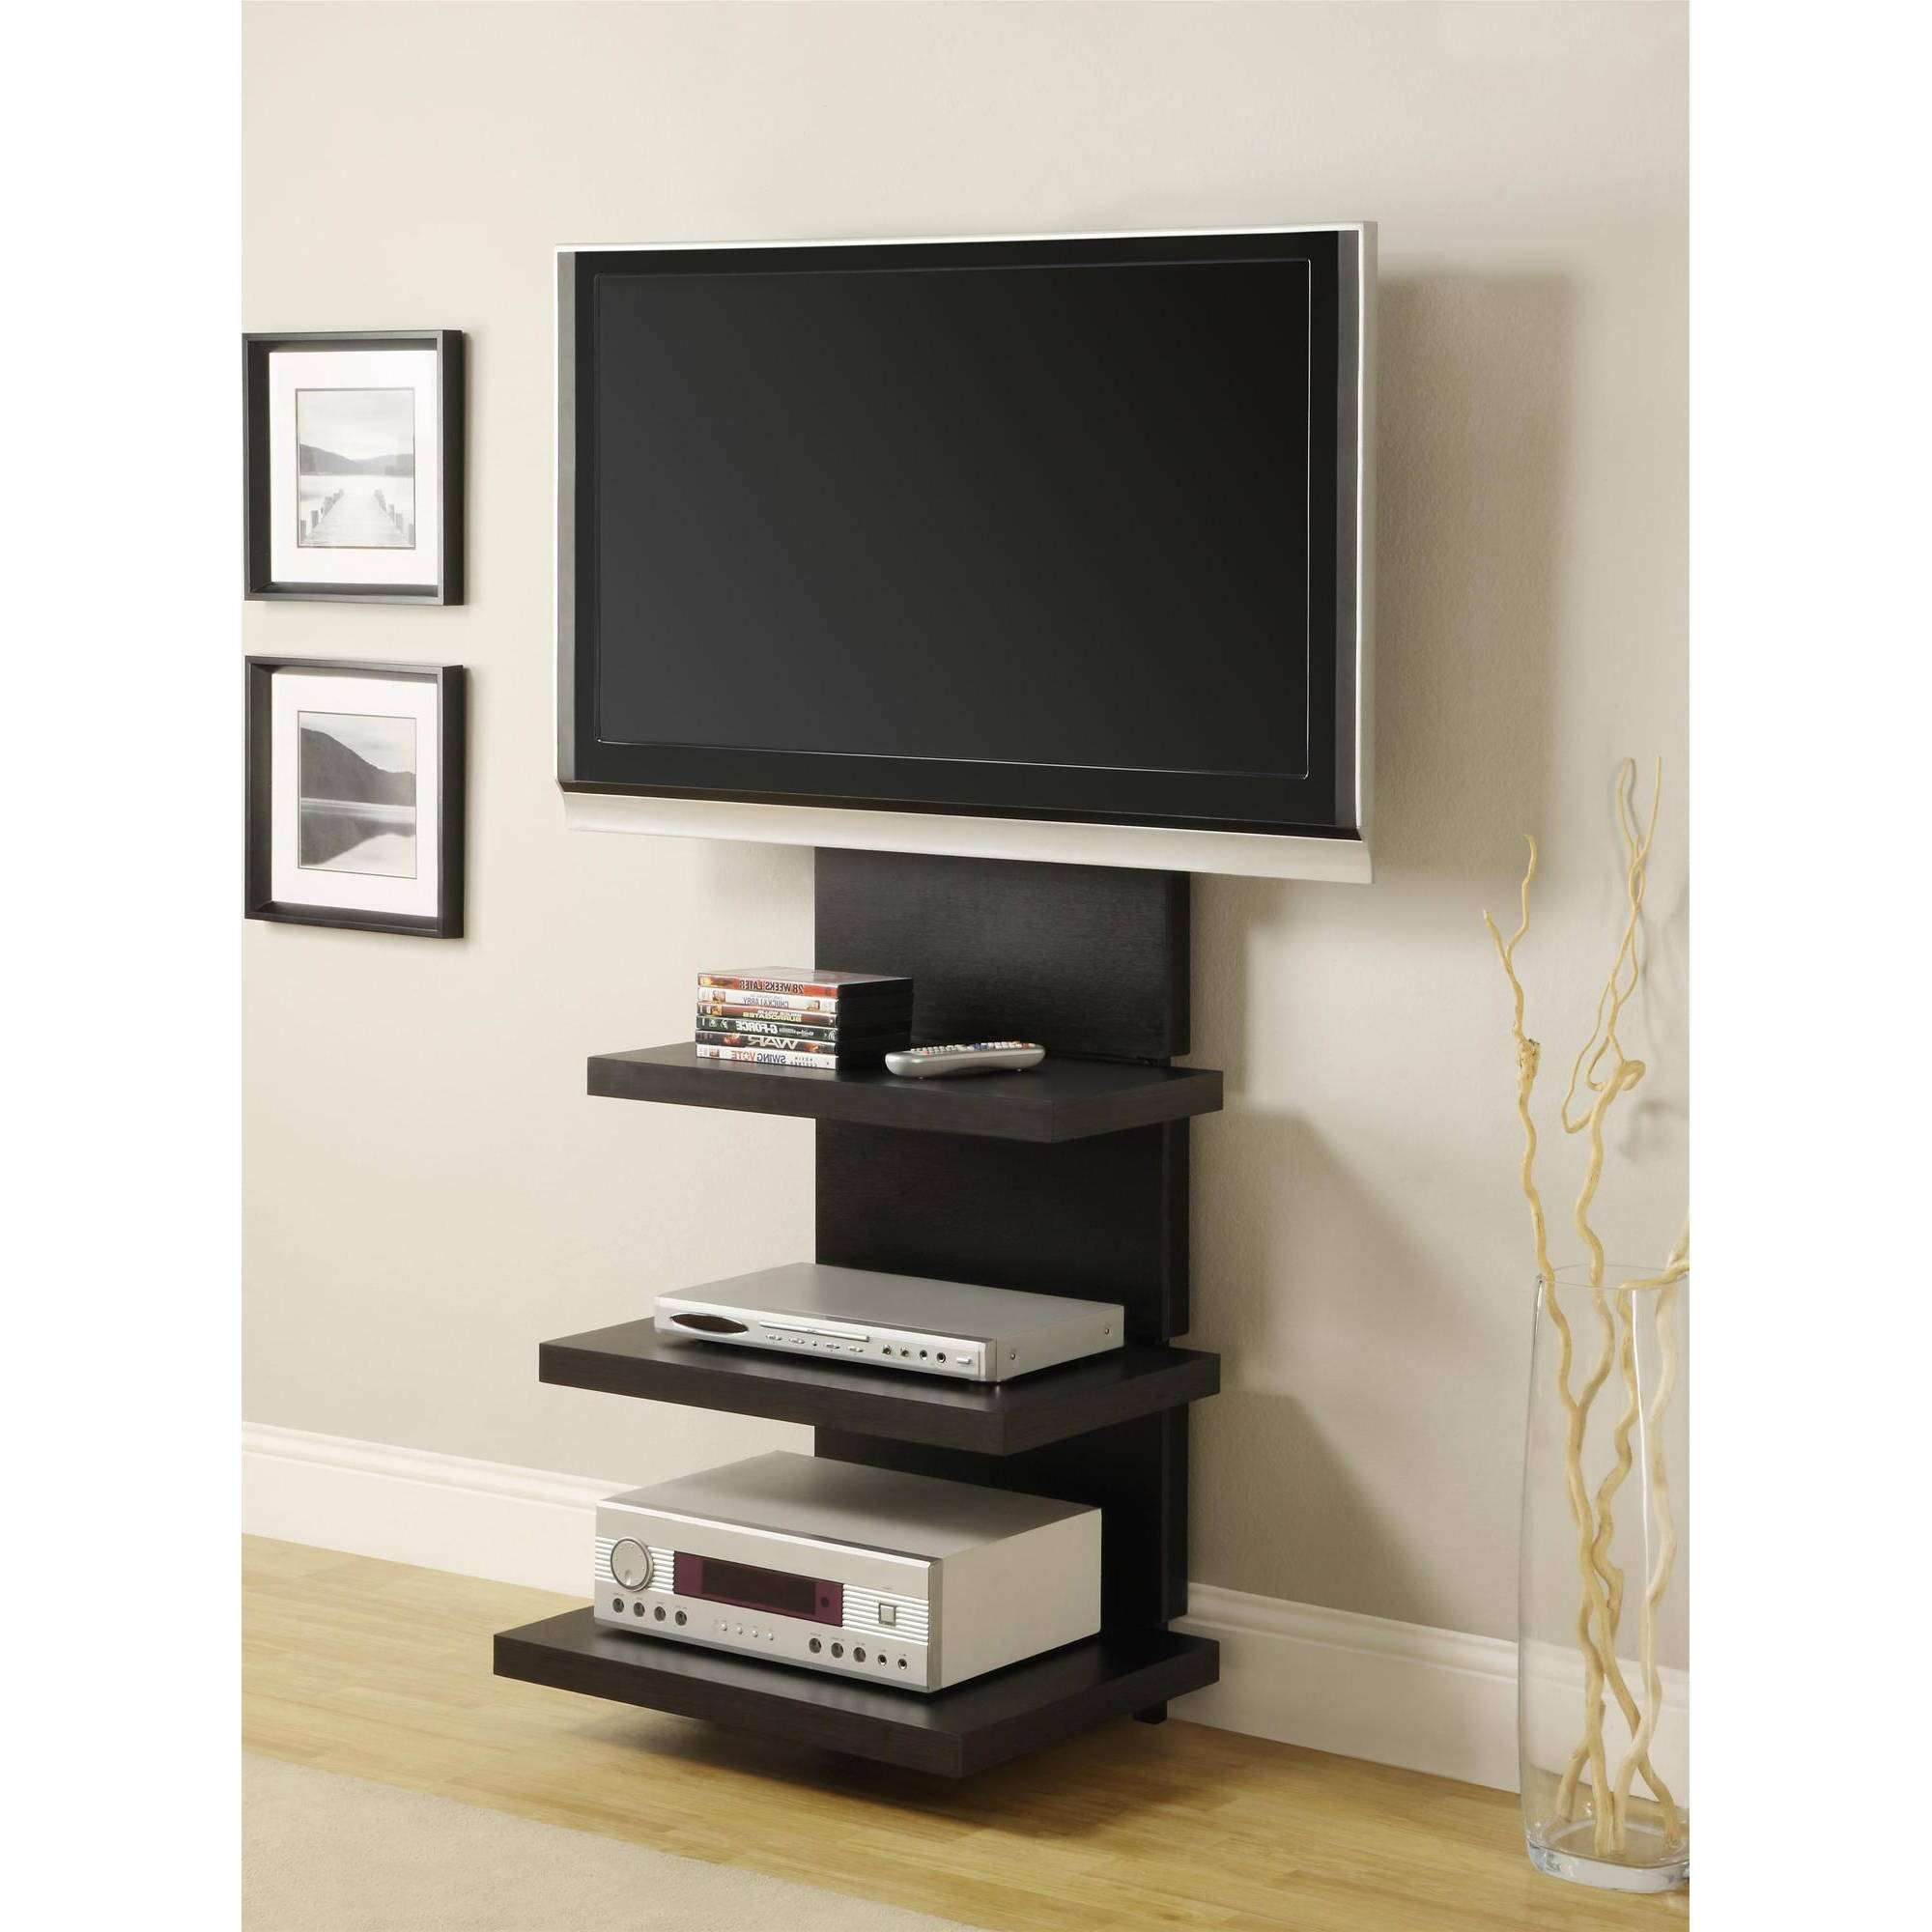 Ameriwood Home Elevation Altramount Tv Stand For Tvs Up To 60 Within Tall Black Tv Cabinets (View 6 of 20)